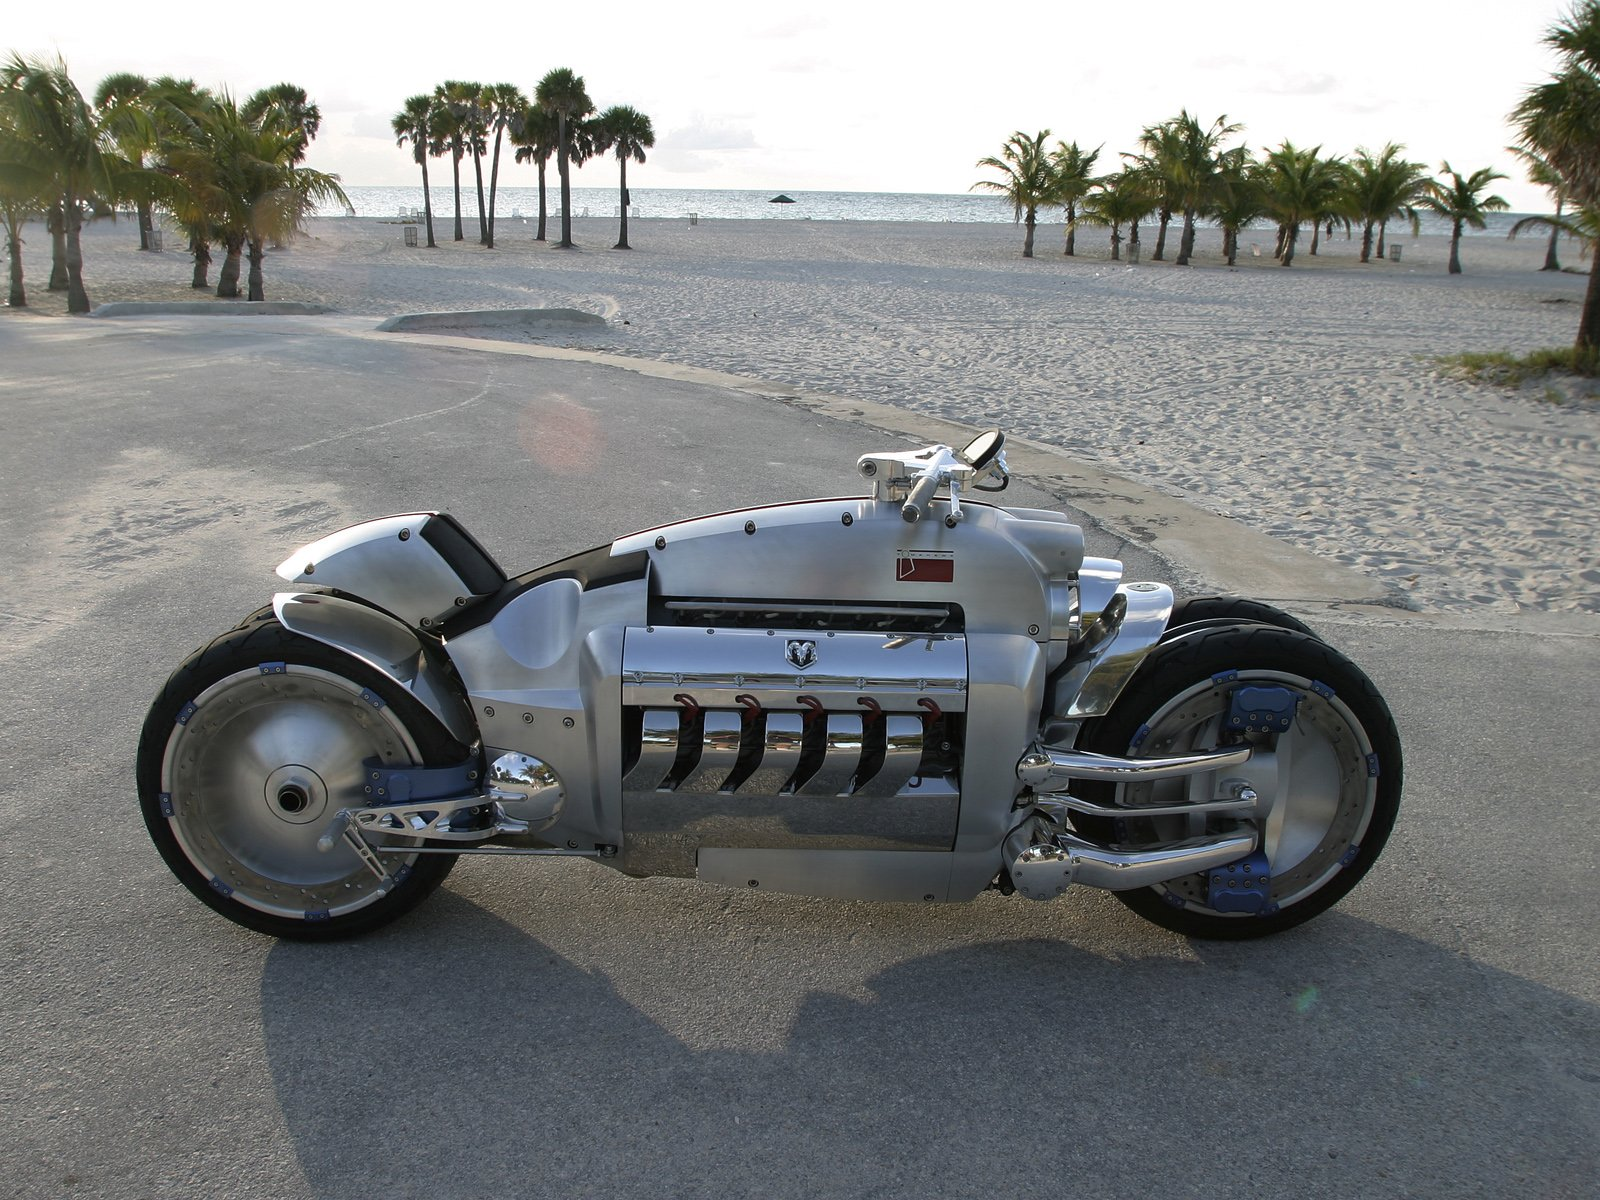 Dodge Motorcycle #9